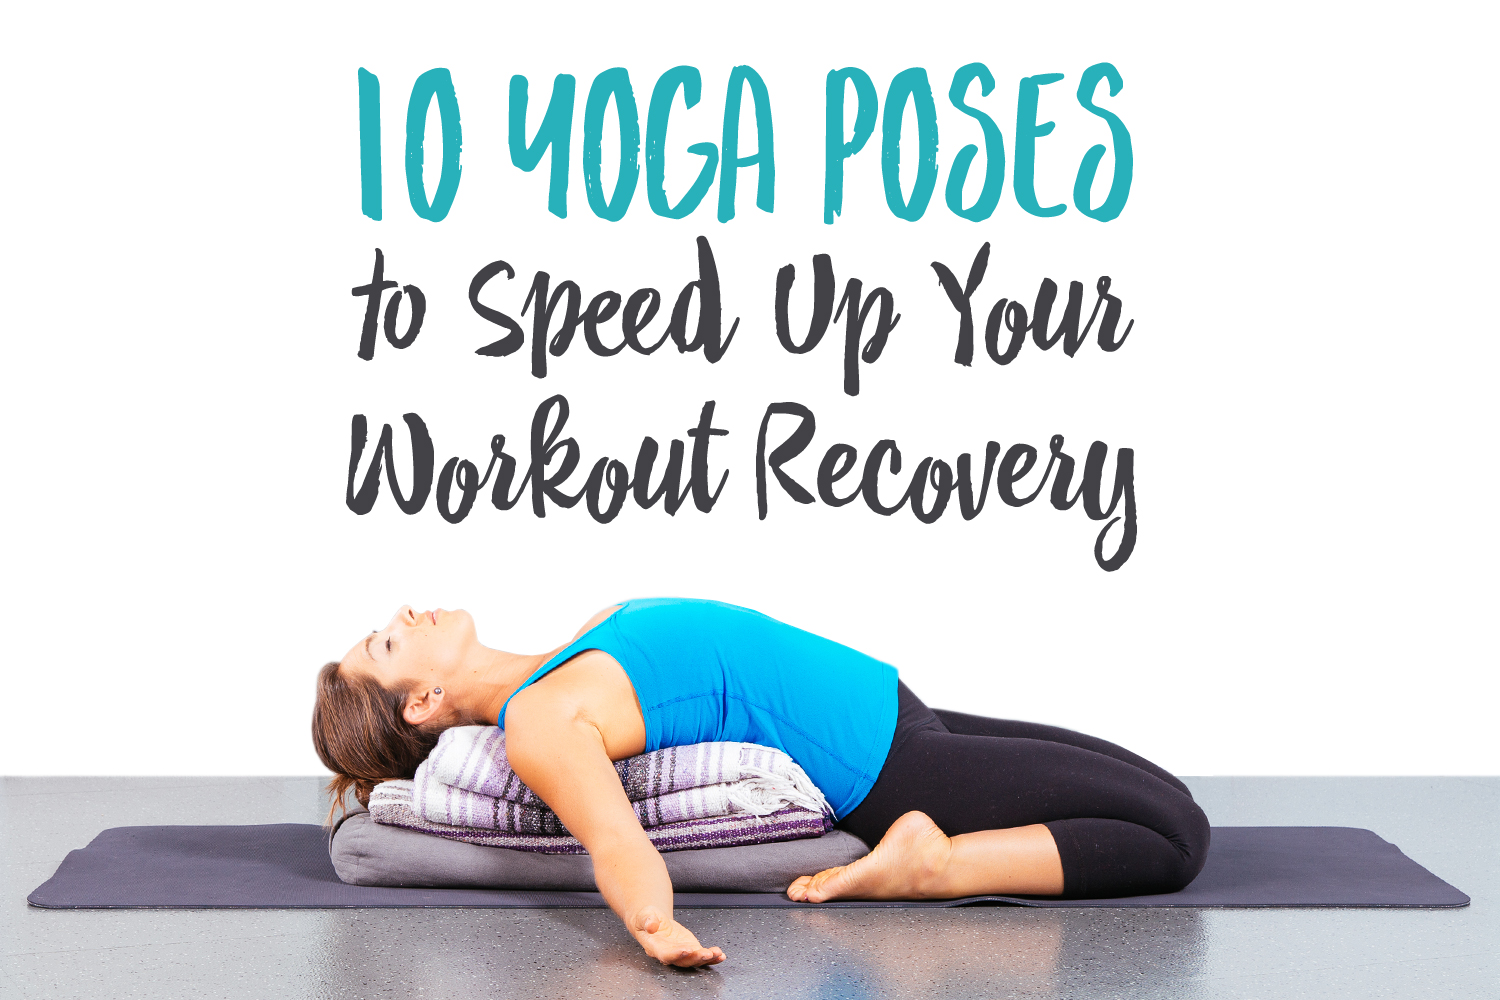 50 Yoga Poses to Speed Up Your Workout Recovery